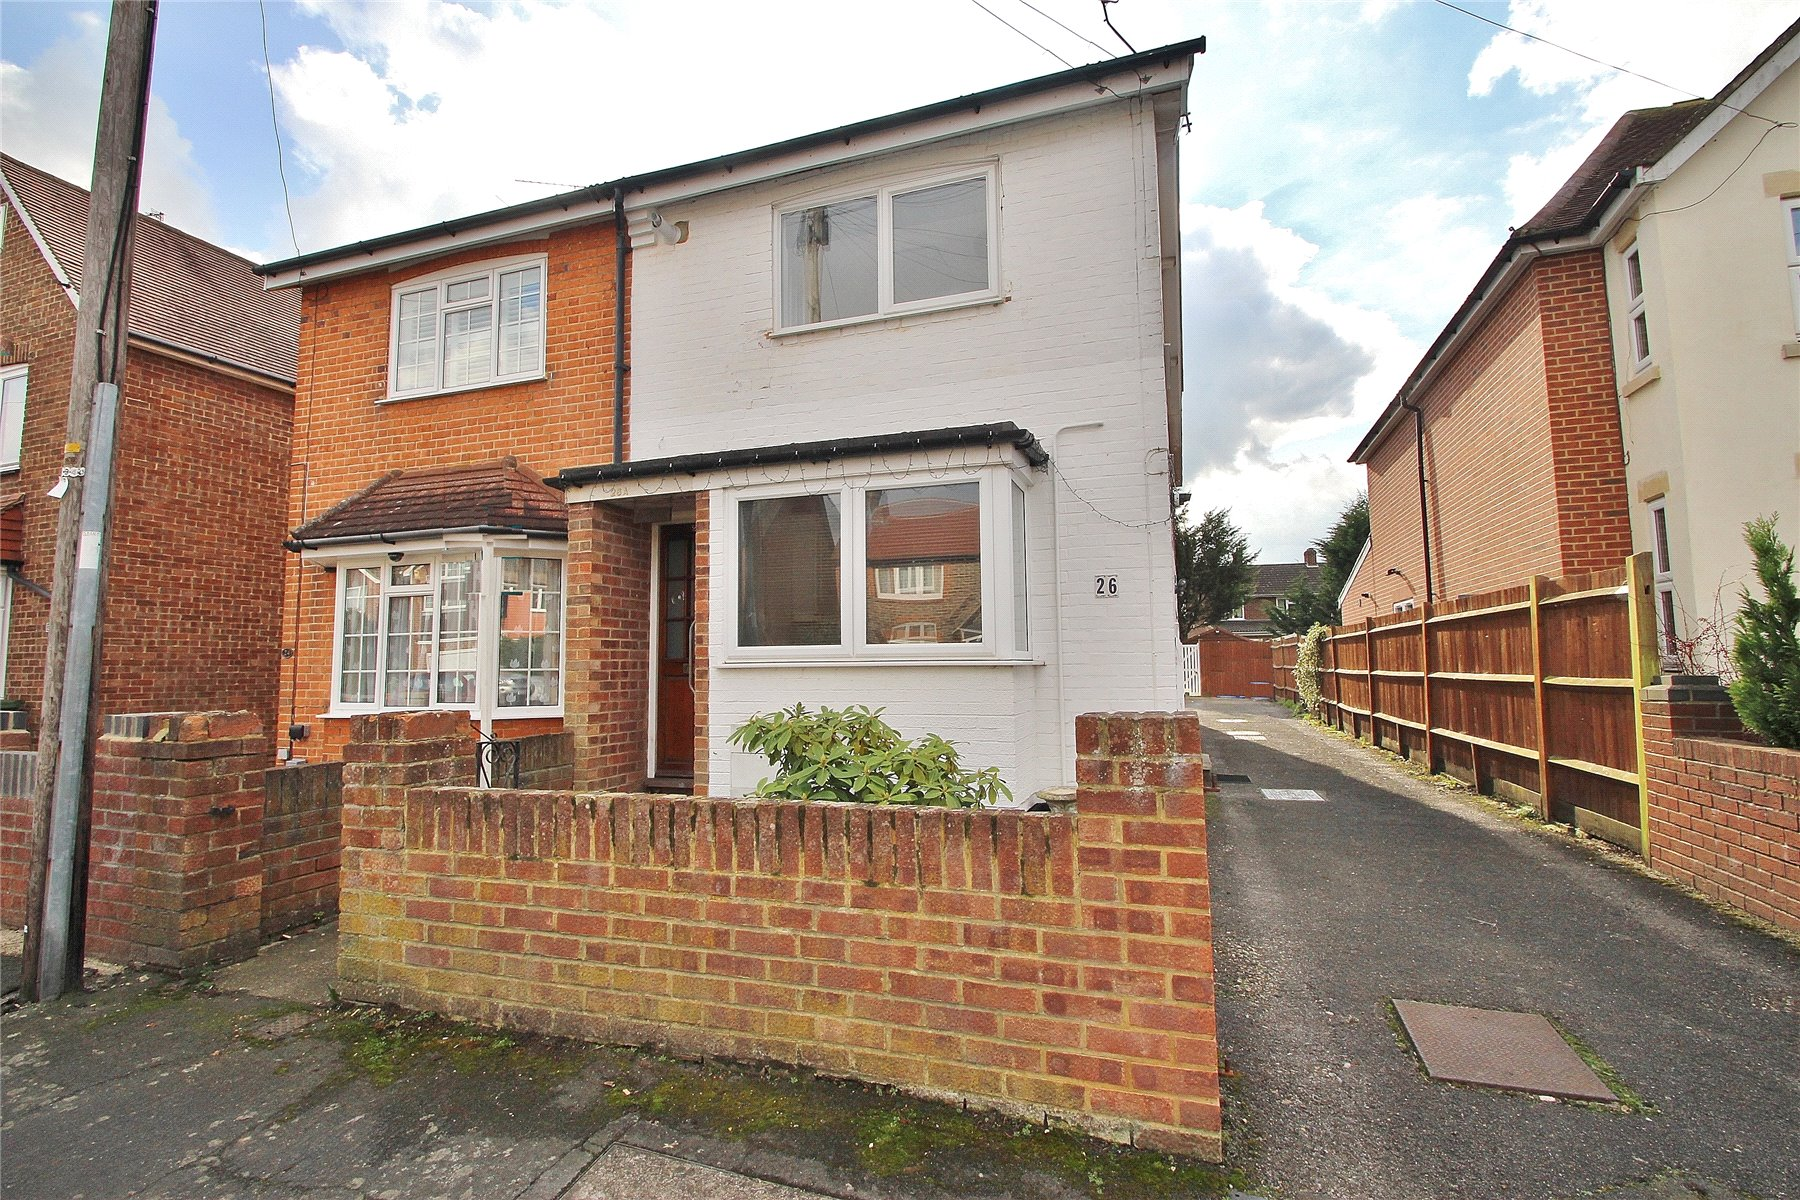 2 Bedrooms Maisonette Flat for sale in Abbey Road, Horsell, Surrey, GU21